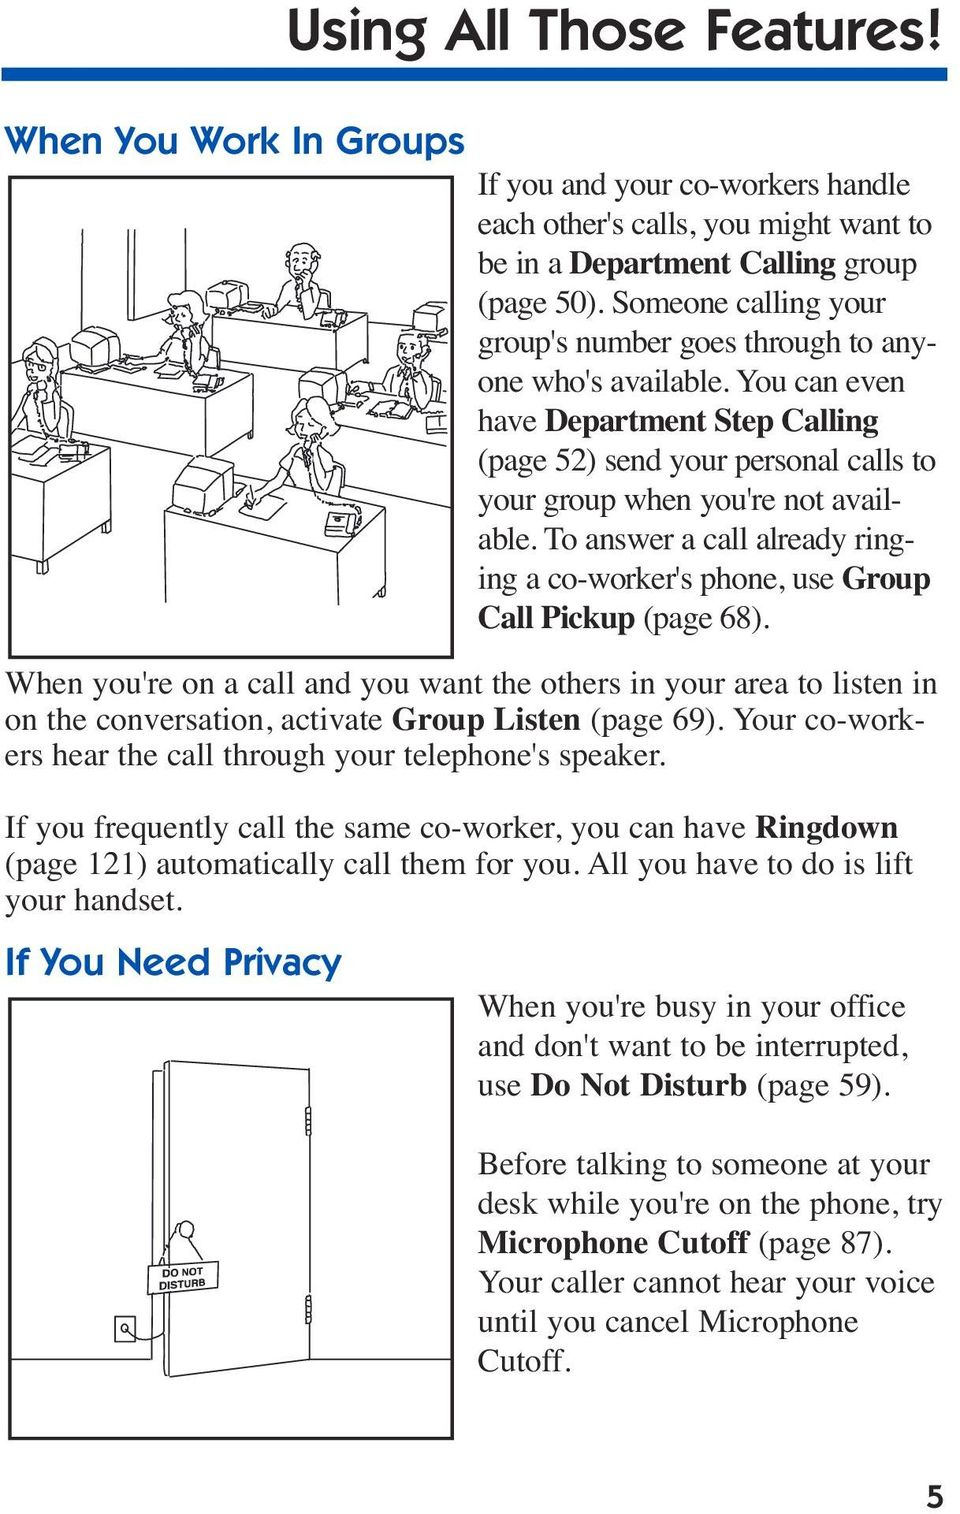 To answer a call already ringing a co-worker's phone, use Group Call Pickup (page 68).